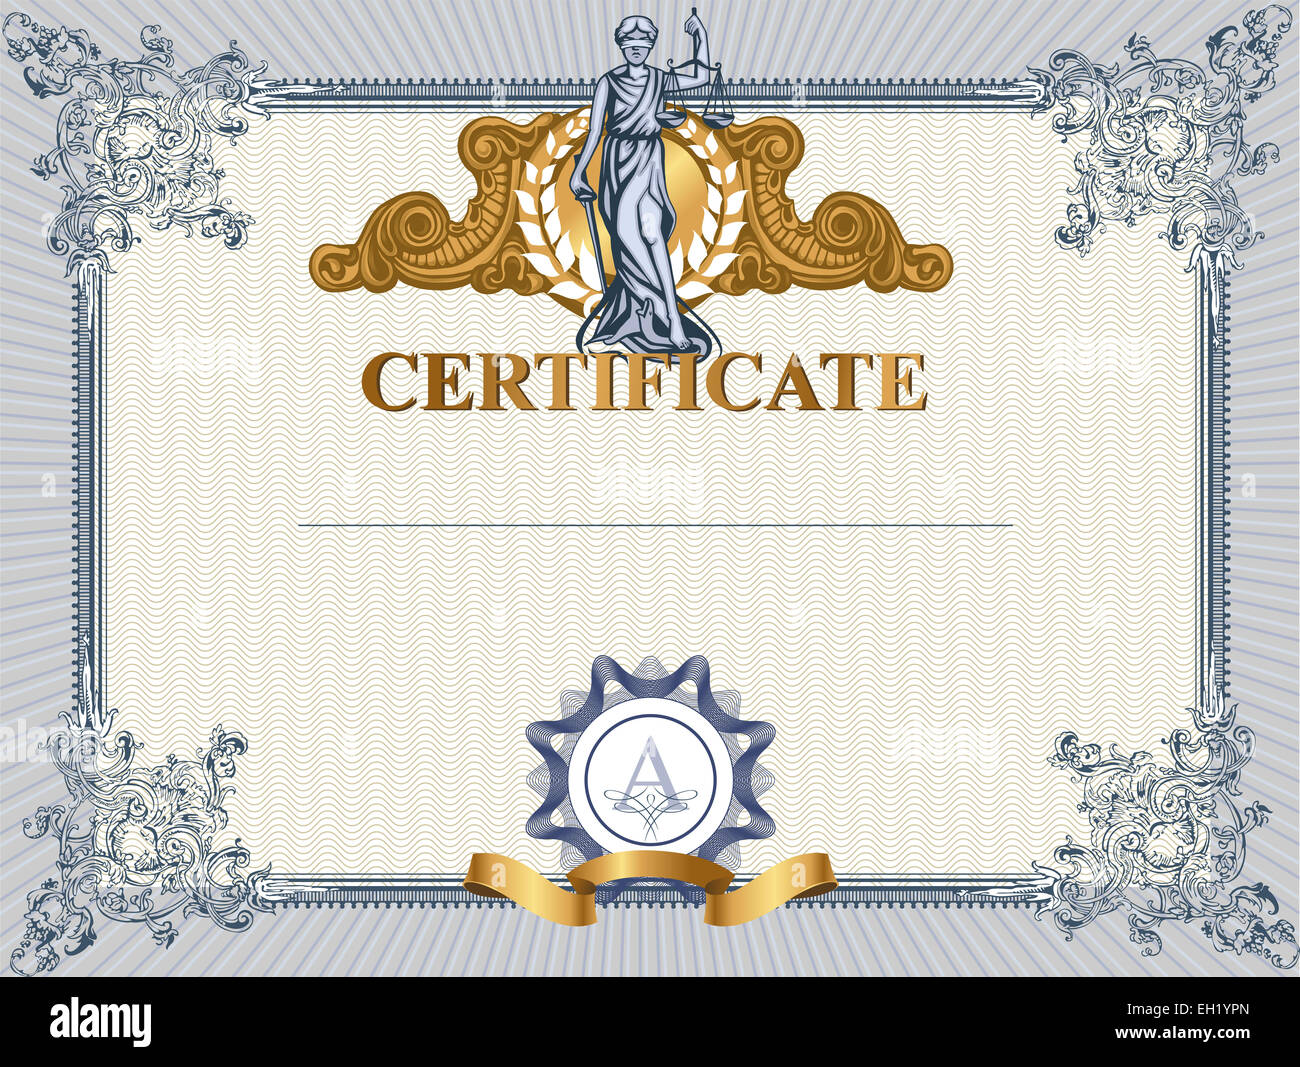 Certificate Border Certificate Template Vector Stockfotos ...